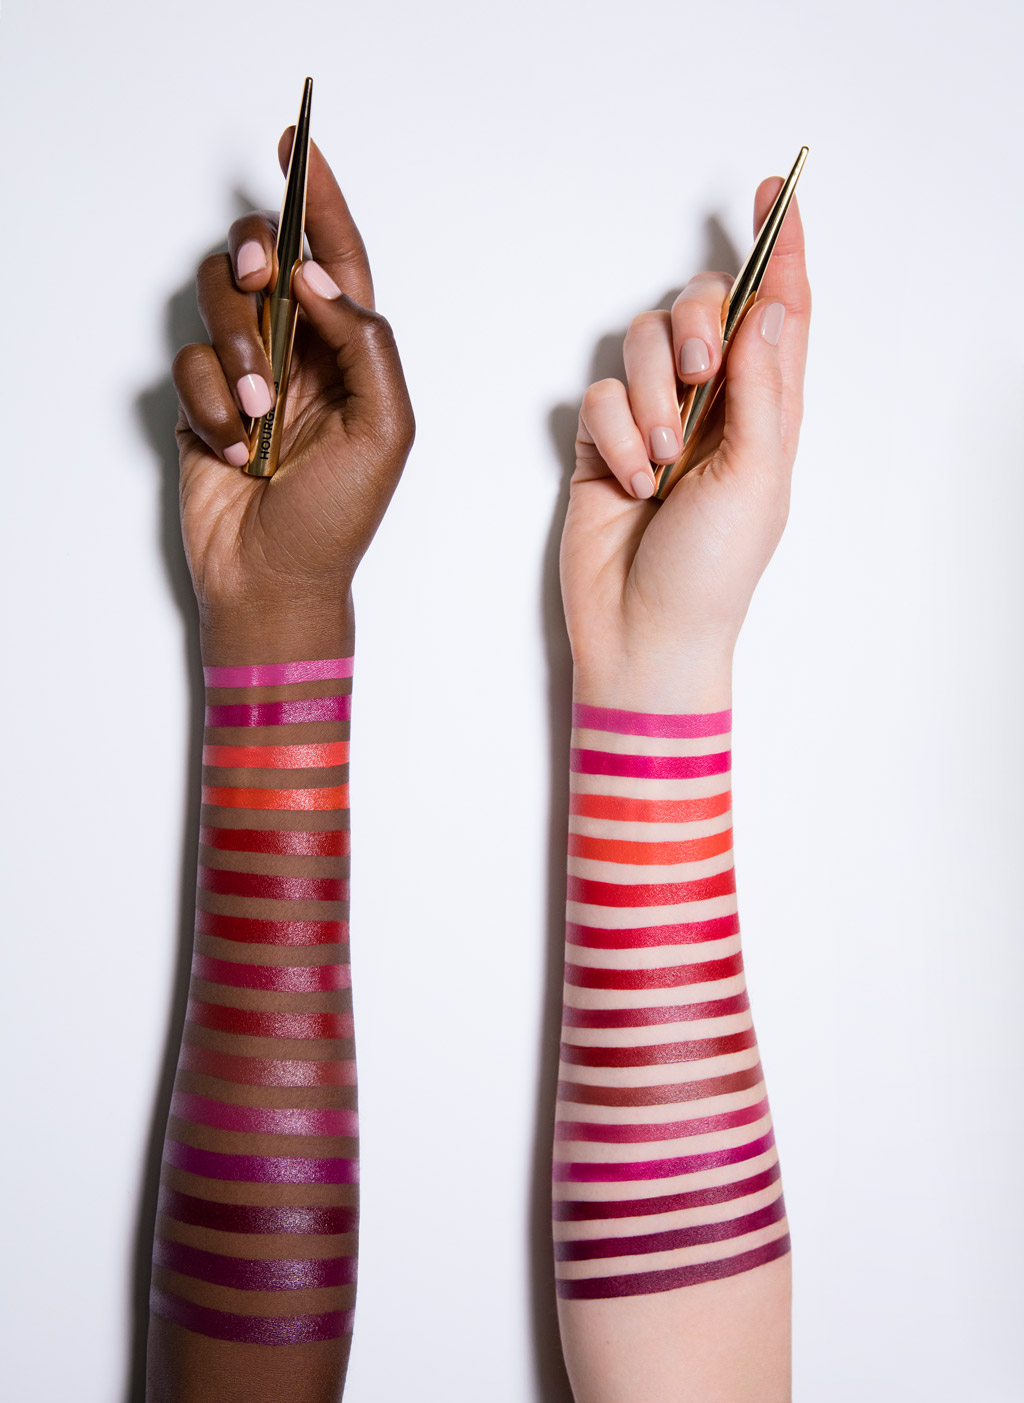 Avenue_Retouching_Hourglass_Arm_swatch_2